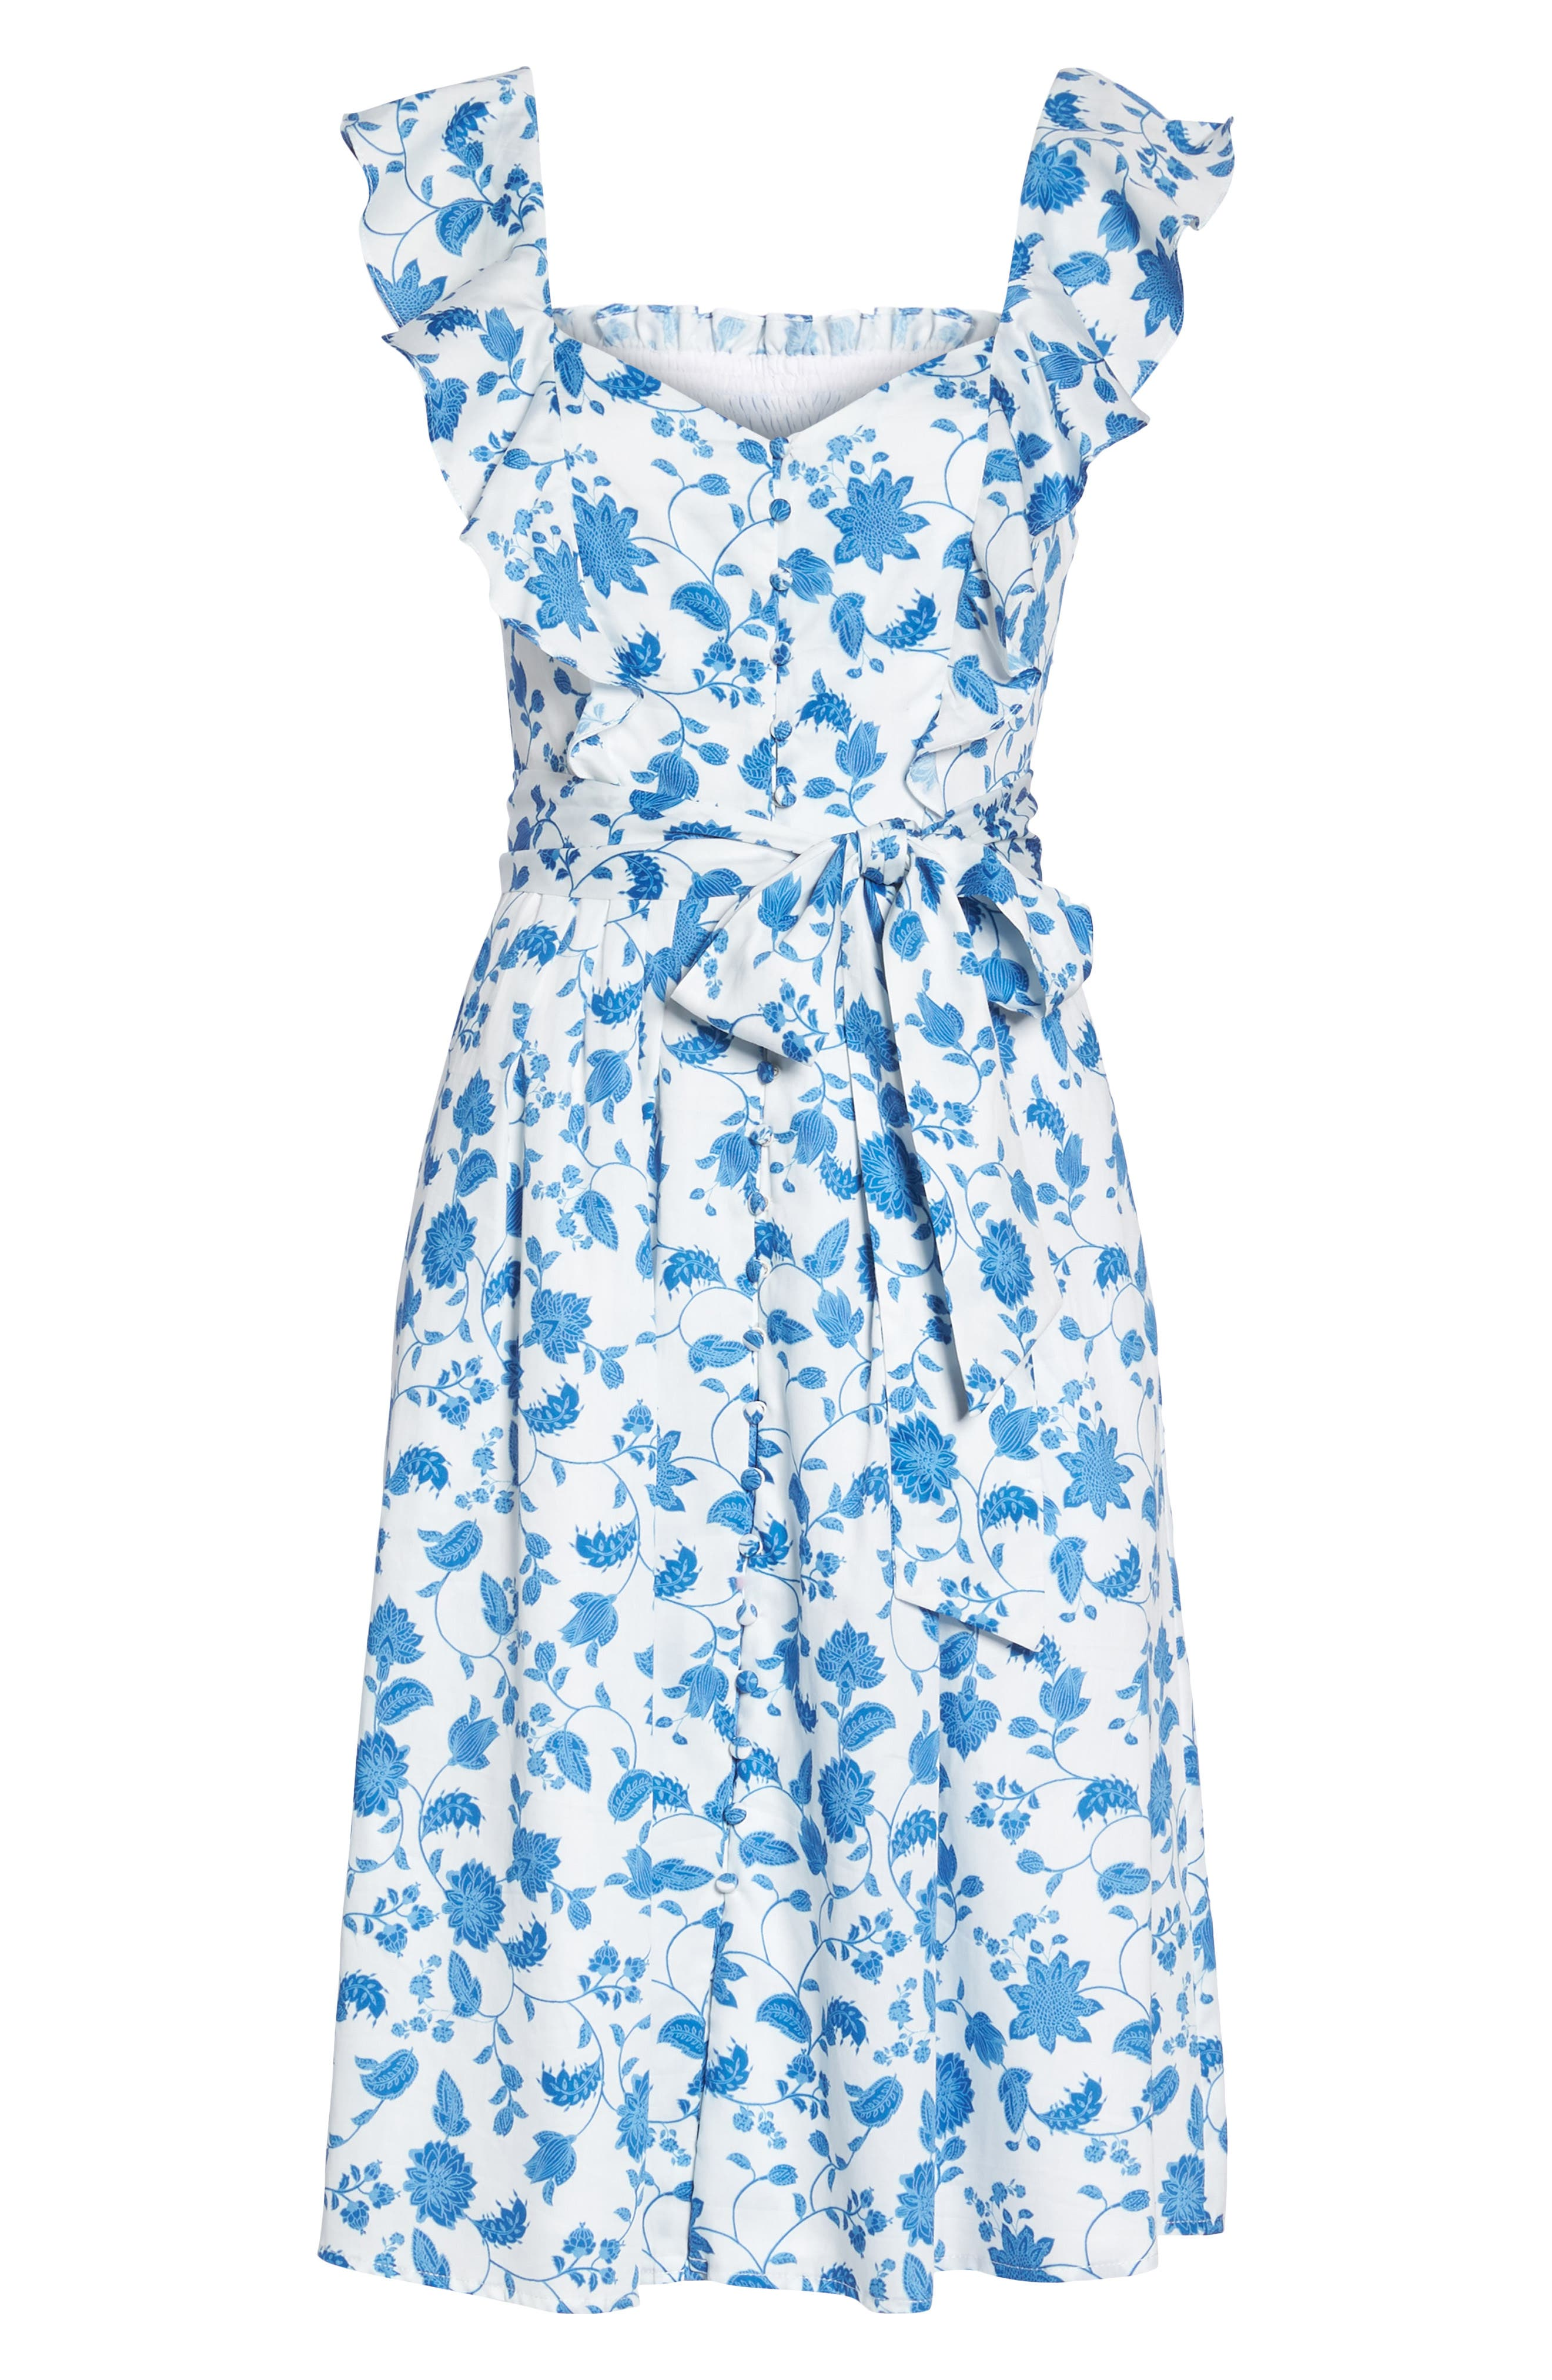 Olivia Floral Wallpaper Print Fit & Flare Dress,                             Alternate thumbnail 8, color,                             400